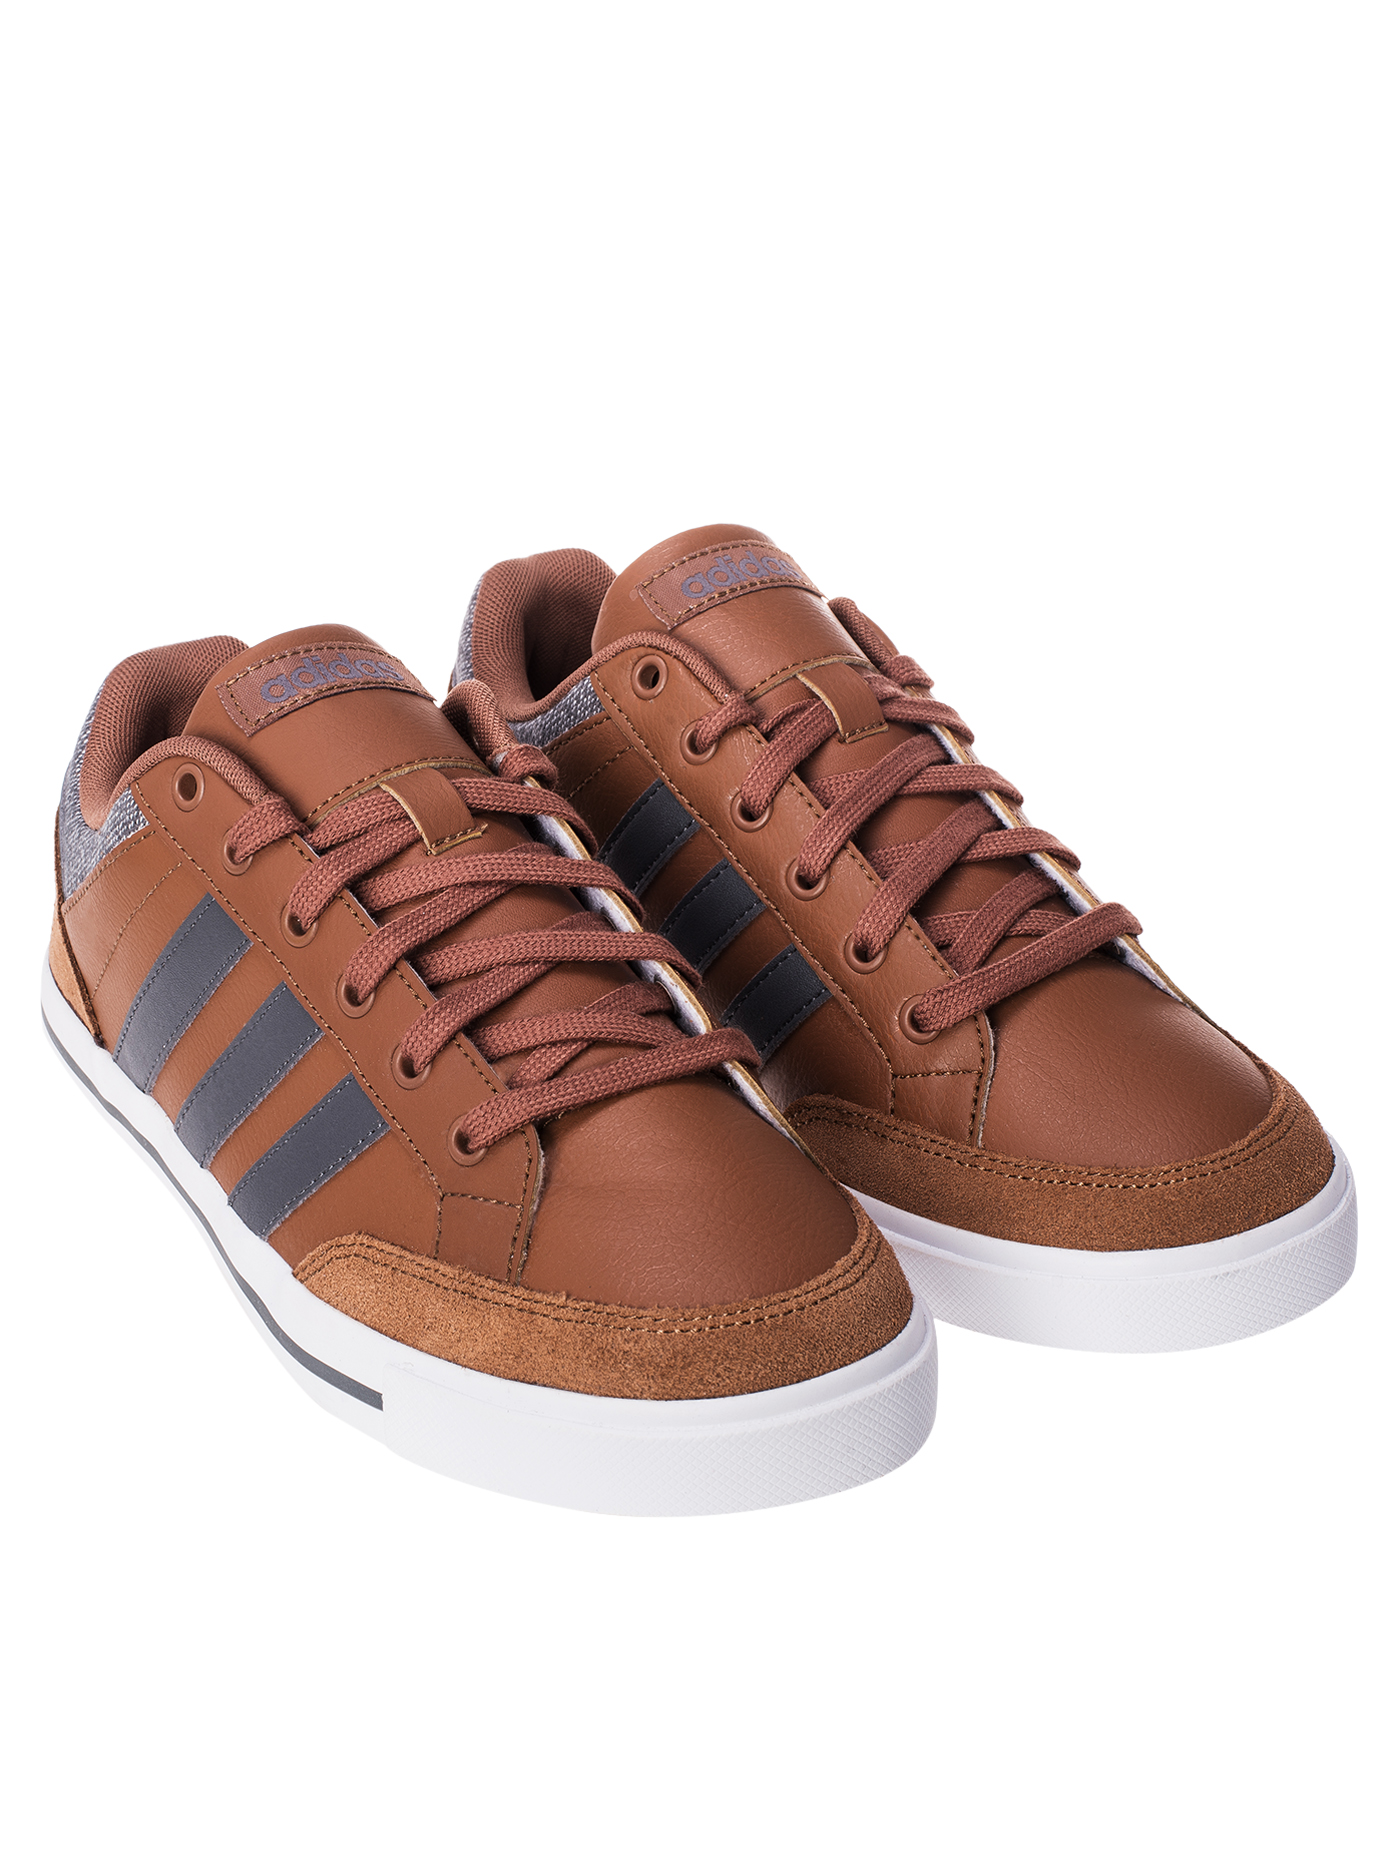 groothandel ADIDAS NEO Men's Casual Shoes Cacity BB9701 Size